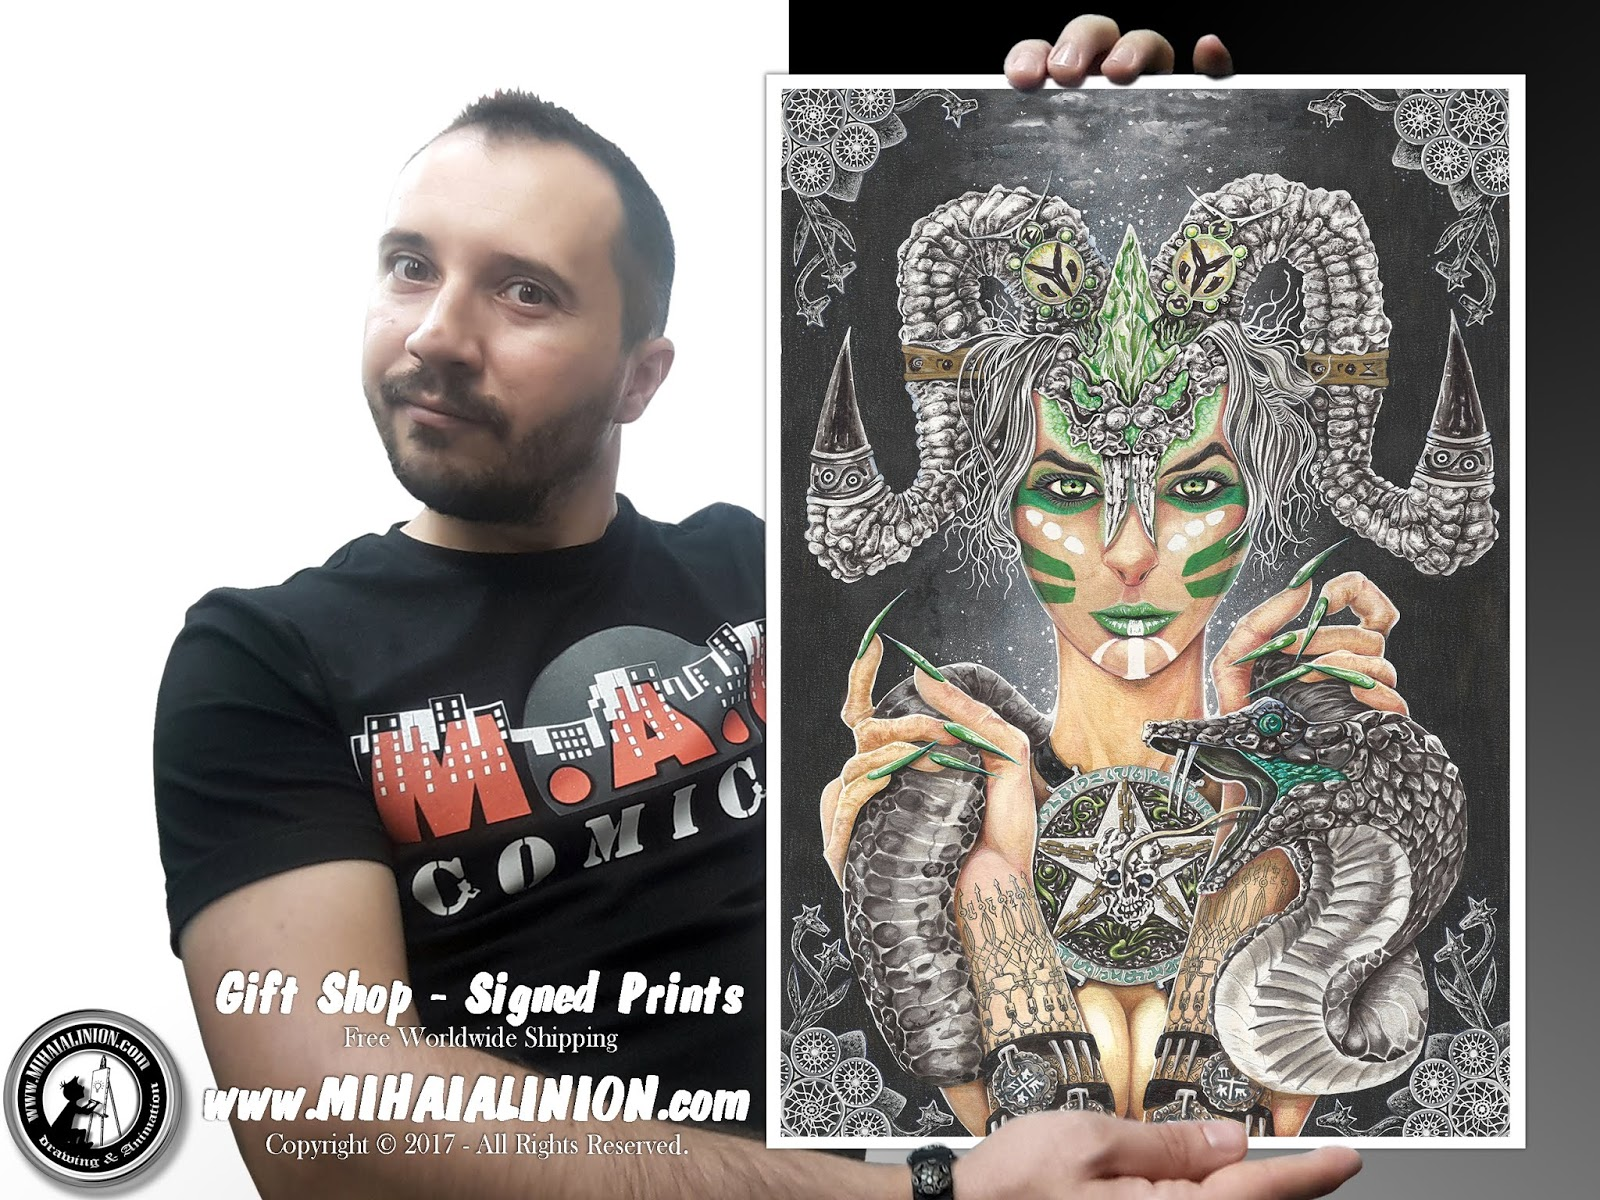 Drawing Snake Lady, Drawing girl, Drawing lady with horns, snake, Drawing woman, painting horror art, classic art, painting dark art, ancient egyptian deity, dark fantasy art snake, mithology illustration, pentagram, snake god, youtube artist, hot sexy girl snake, MAI Comics, Mihai Alin Ion, art by mihai alin ion, how to draw, artselfie, drawing ideas, free drawing lessons, drawing tutorial, art, drawing apep, dessin, disegno, dibujo, drawing, illustration, painting, design, realistic 3d art, coloured pencils, www.mihaialinion.com, 2017, pencil drawing, tempera, acrilics paint, marker, gouache painting, mixed media, comics, comic book, caricature, portrait, cum sa desenezi, caricaturi mihai alin ion, caricaturi si portrete  la comanda, eveniment caricaturi, caricaturi la nunta, caricaturi la botez, caricaturi la majorat, desene pe pereti, desene pentru copii, ilustratie carte, benzi desenate, caricaturi, portrete, comanda caricaturi